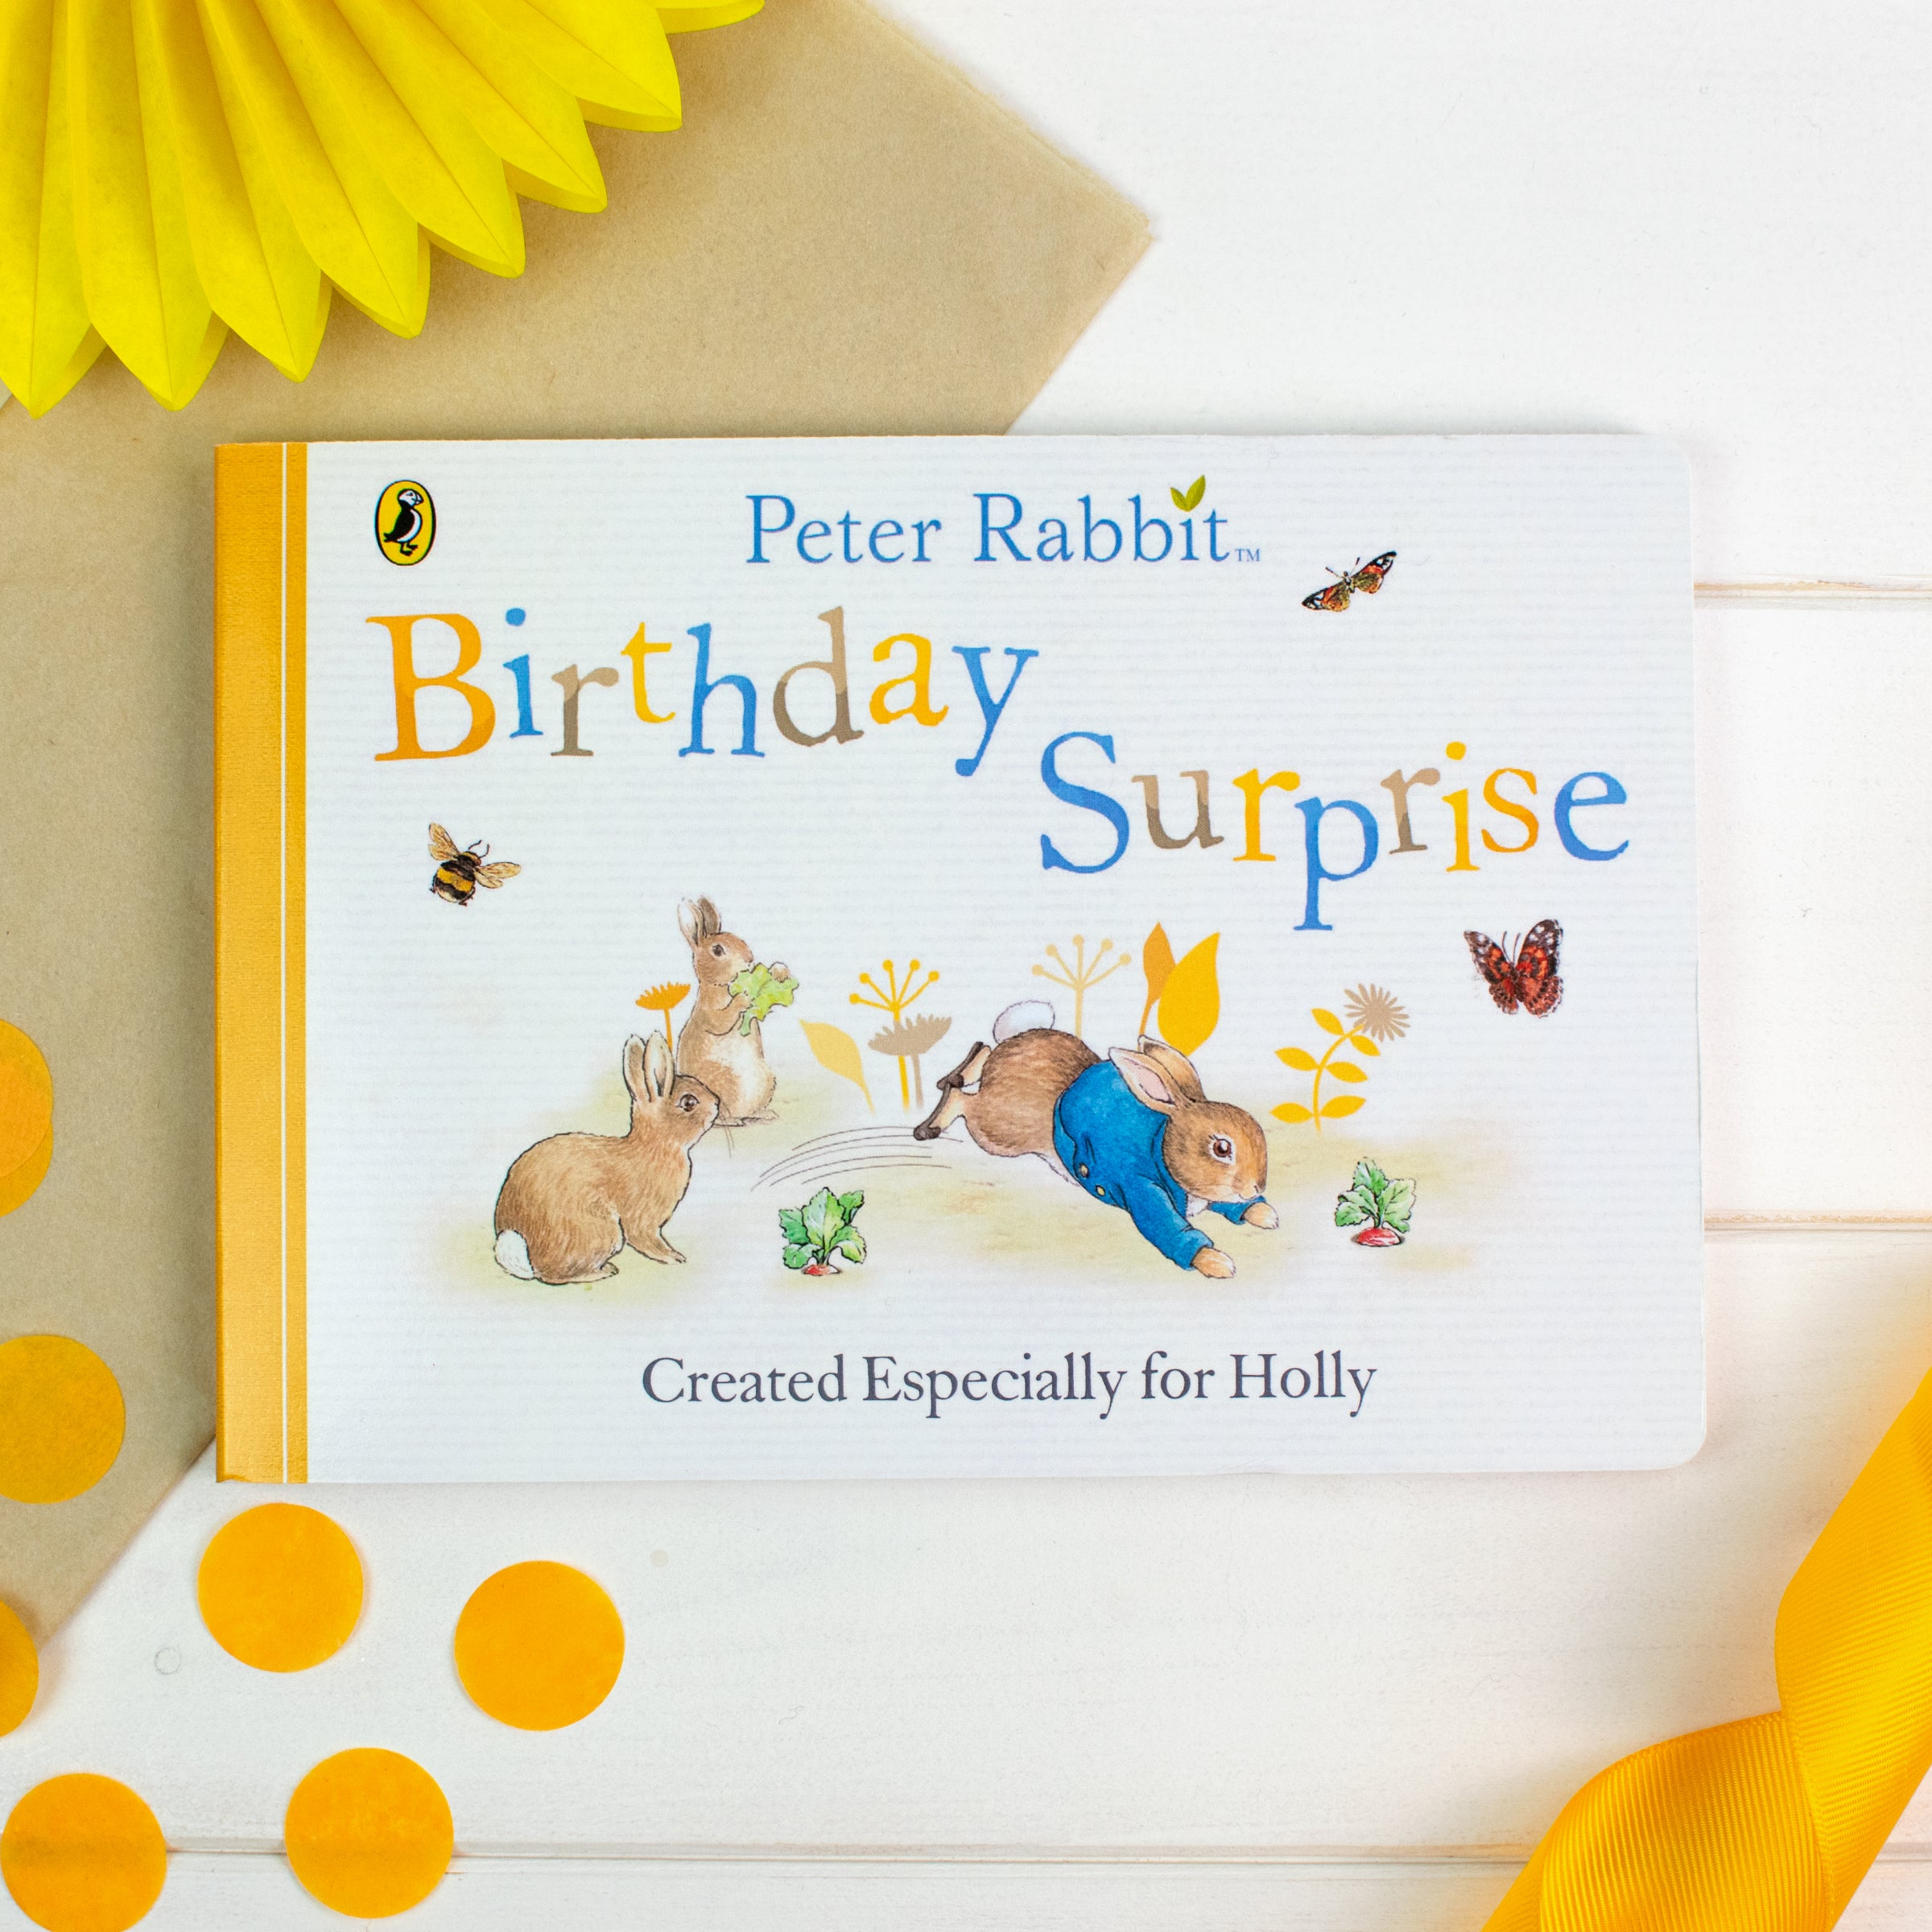 Personalised Peter Rabbit 'Birthday Surprise' Board Book, Art & Craft Kits by Low Cost Gifts